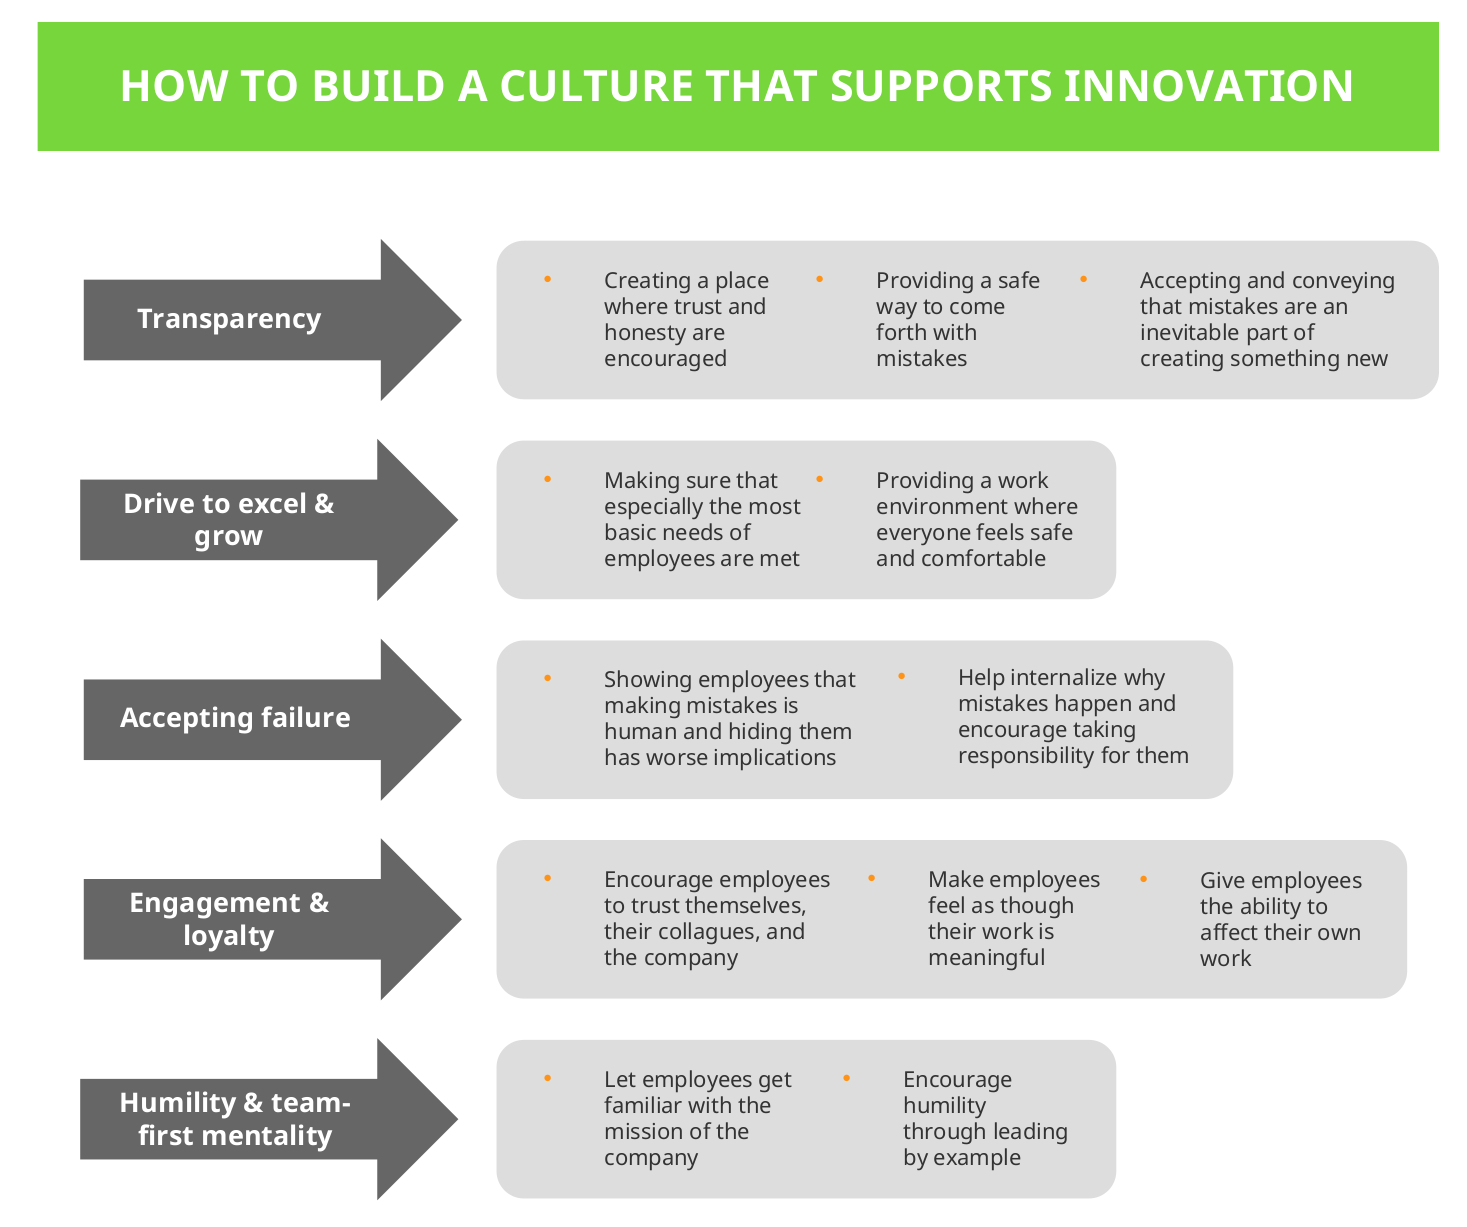 How to build a culture that supports innovation infopic